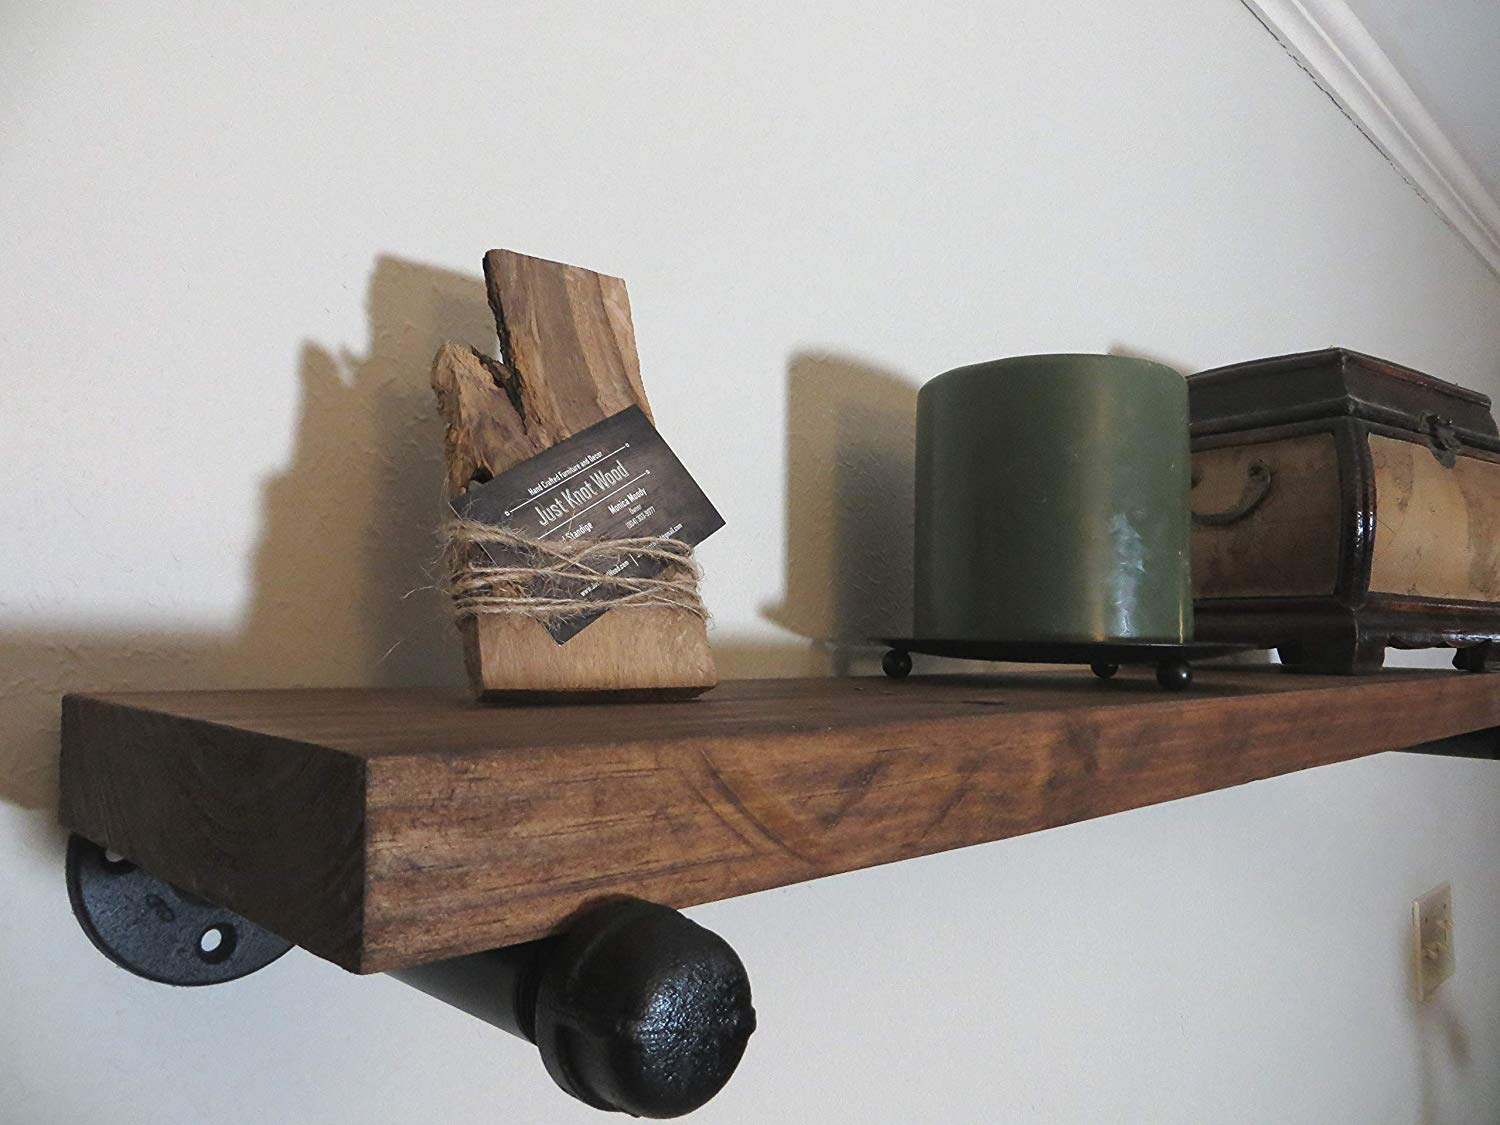 Cheap Rustic Wood Wall Shelves Find Rustic Wood Wall Shelves Deals On Line At Alibaba Com